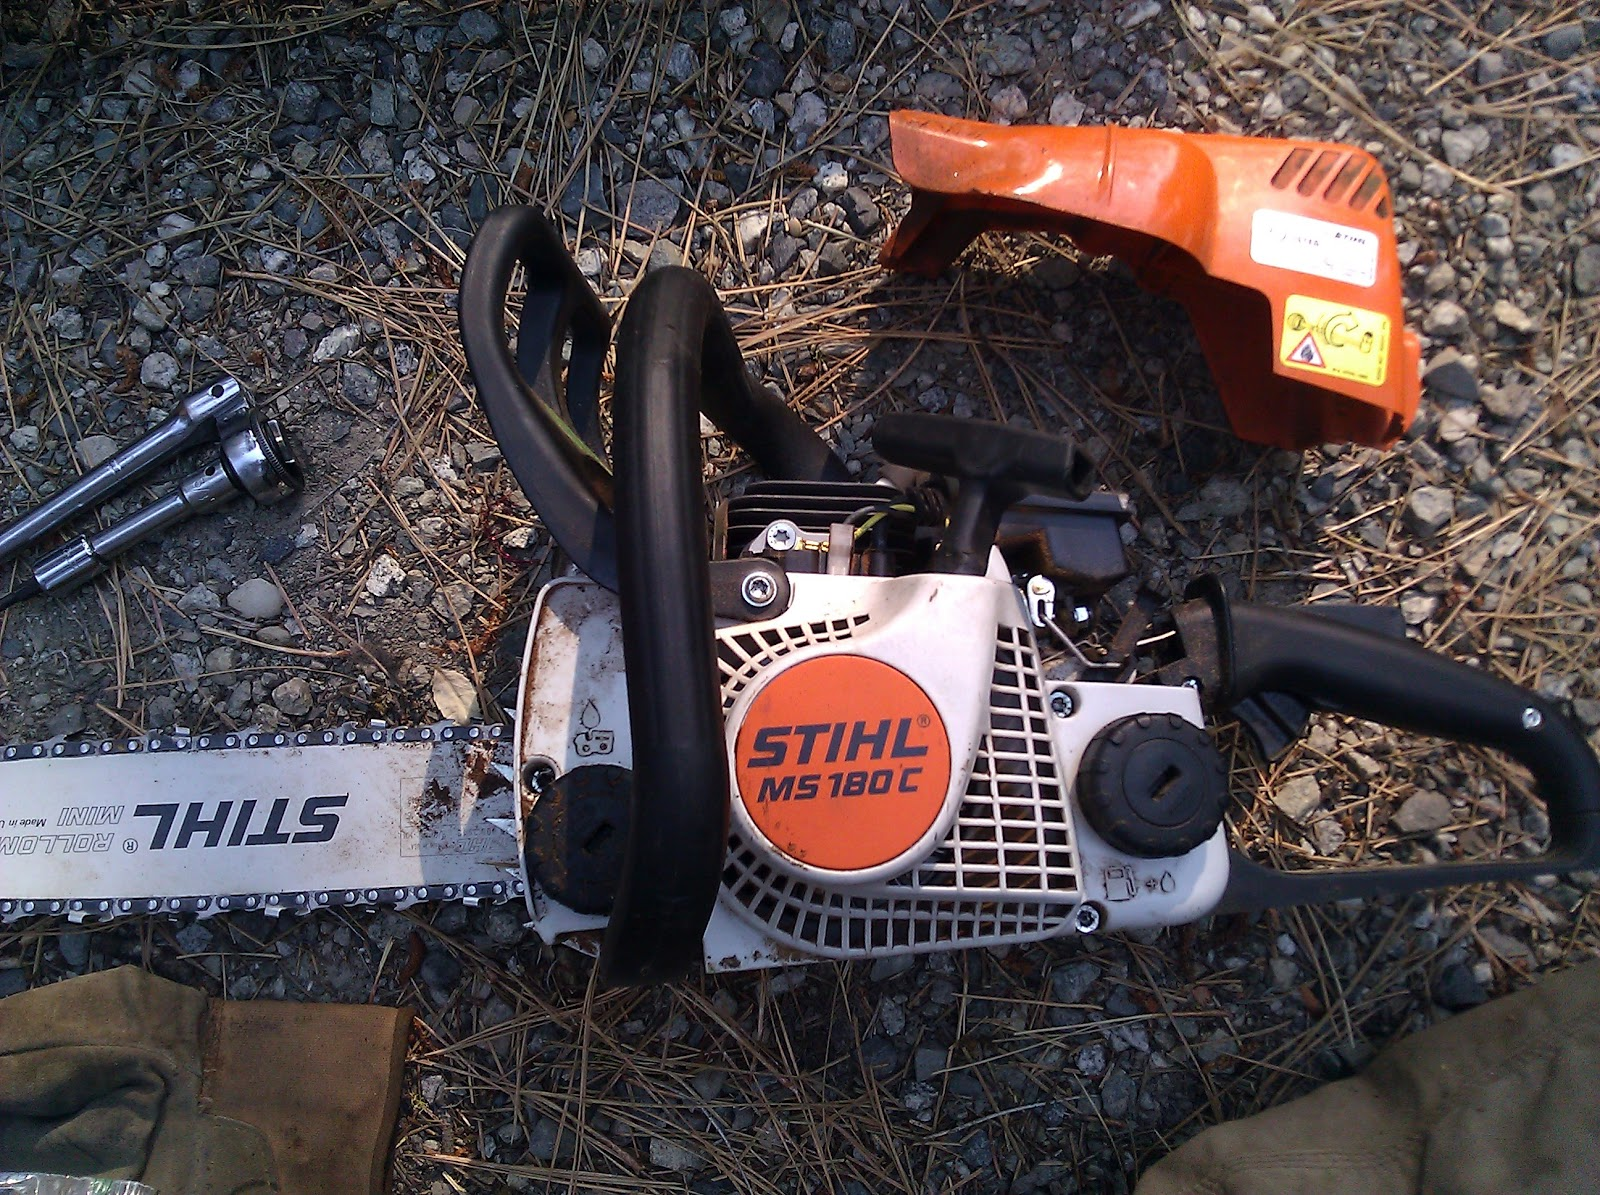 Starting instructions for stihl fs55r repair manual Pdf